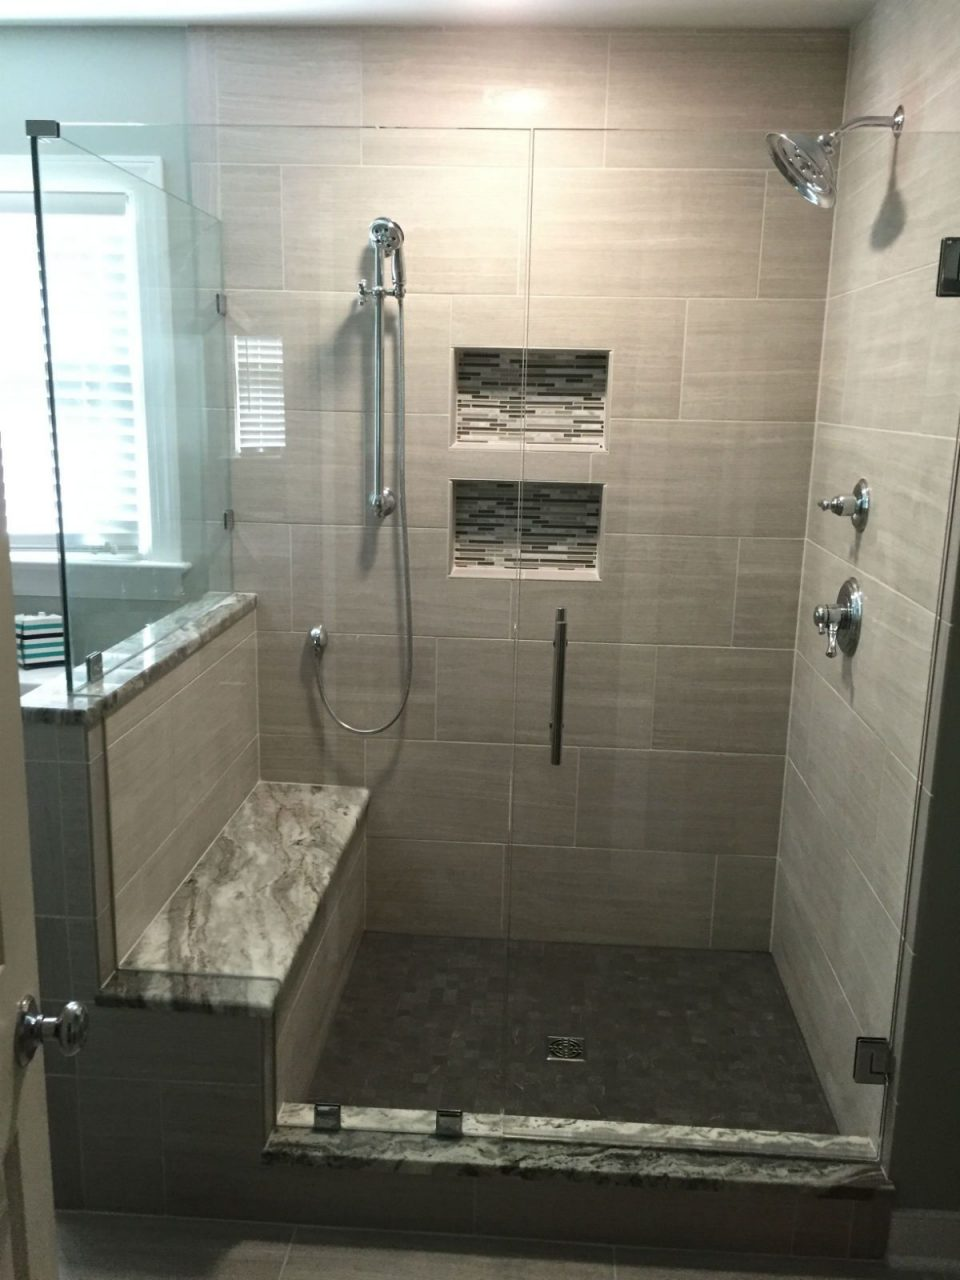 This Frameless Corner Shower Door Enclosure Features A Double